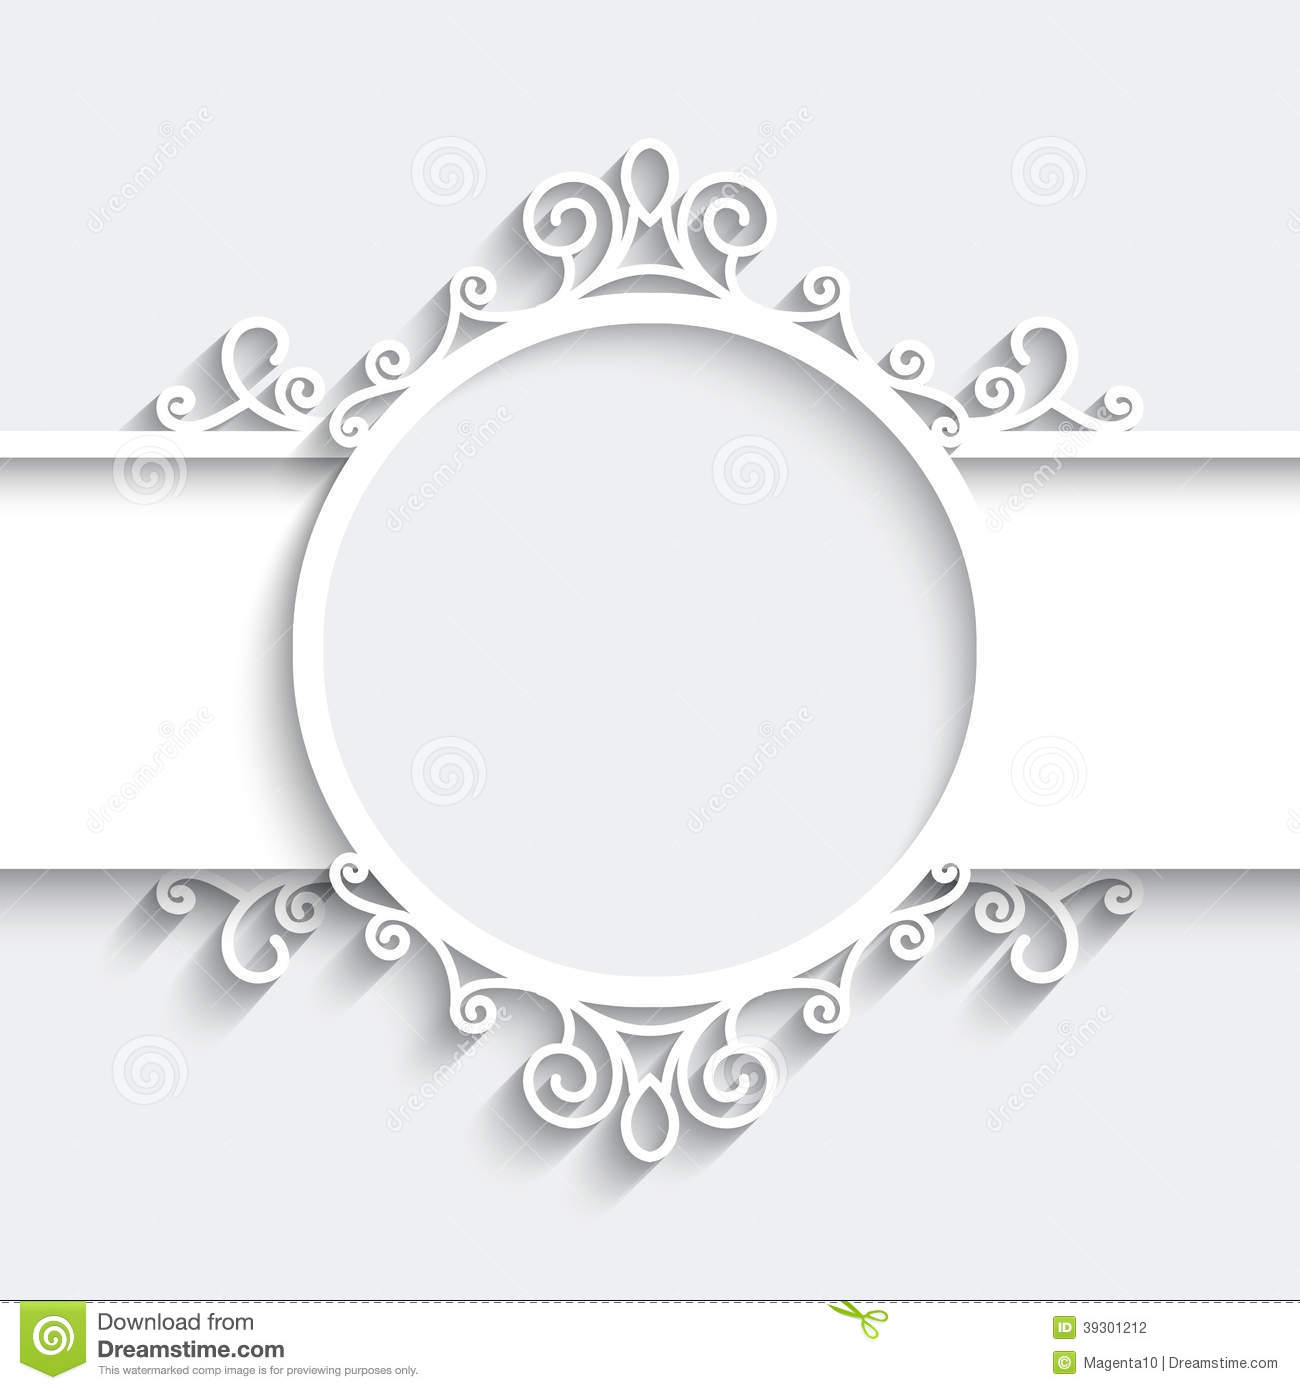 Paper frame with shadow, ornamental vignette on white background